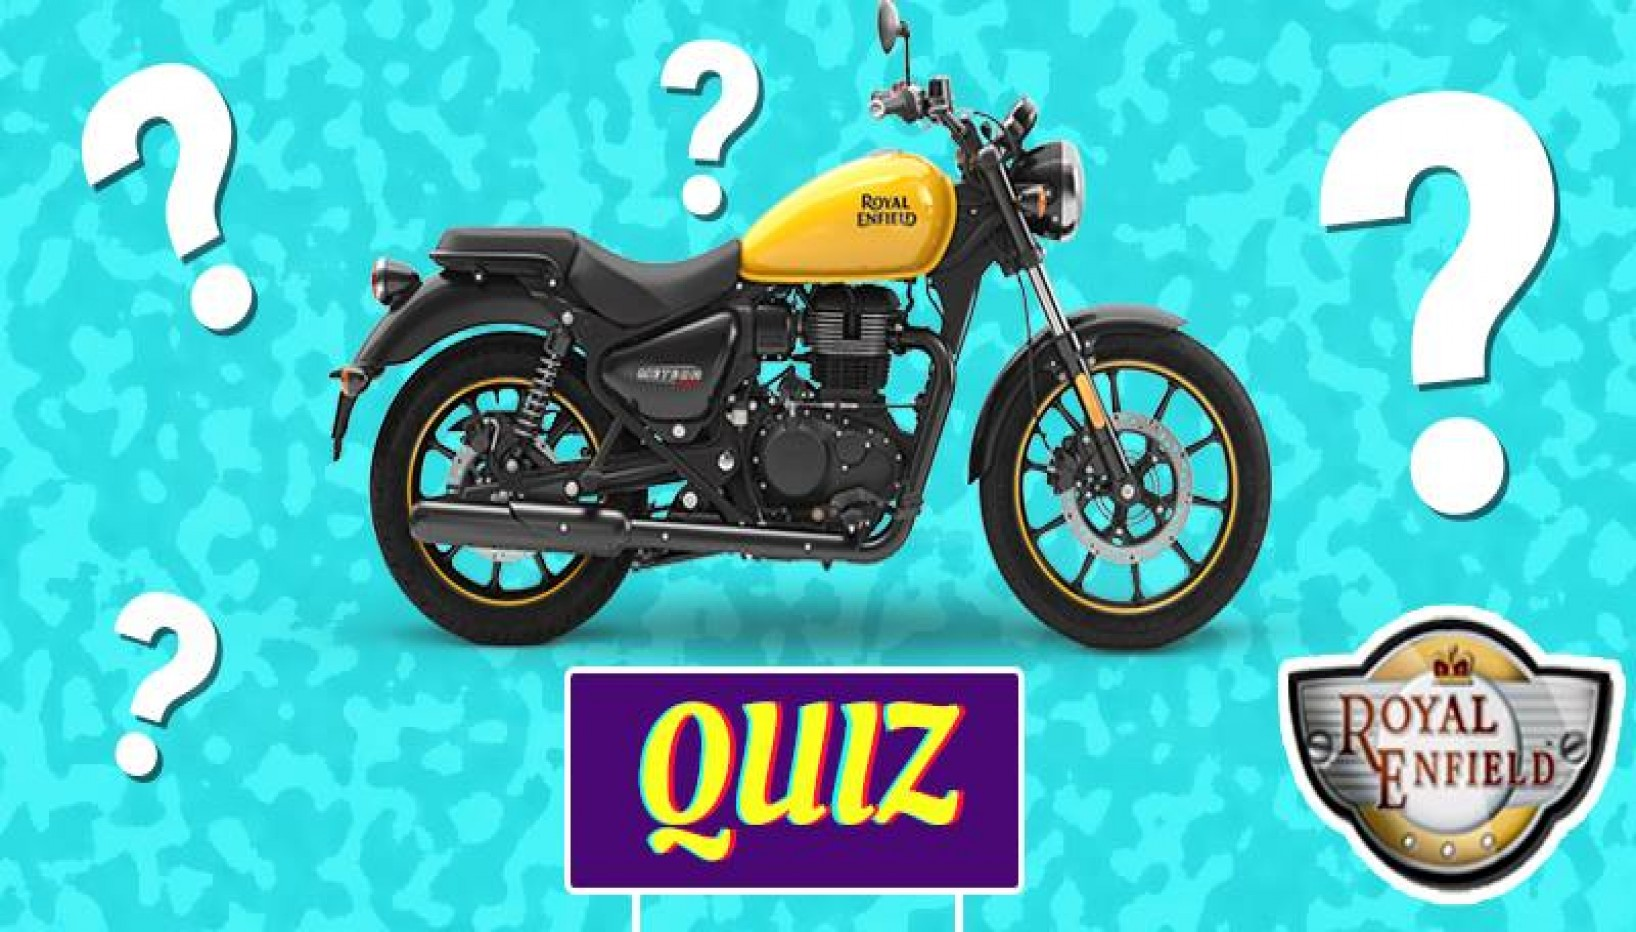 Only A True Bullet Raja Will Score 10/10 On This Royal Enfield Quiz